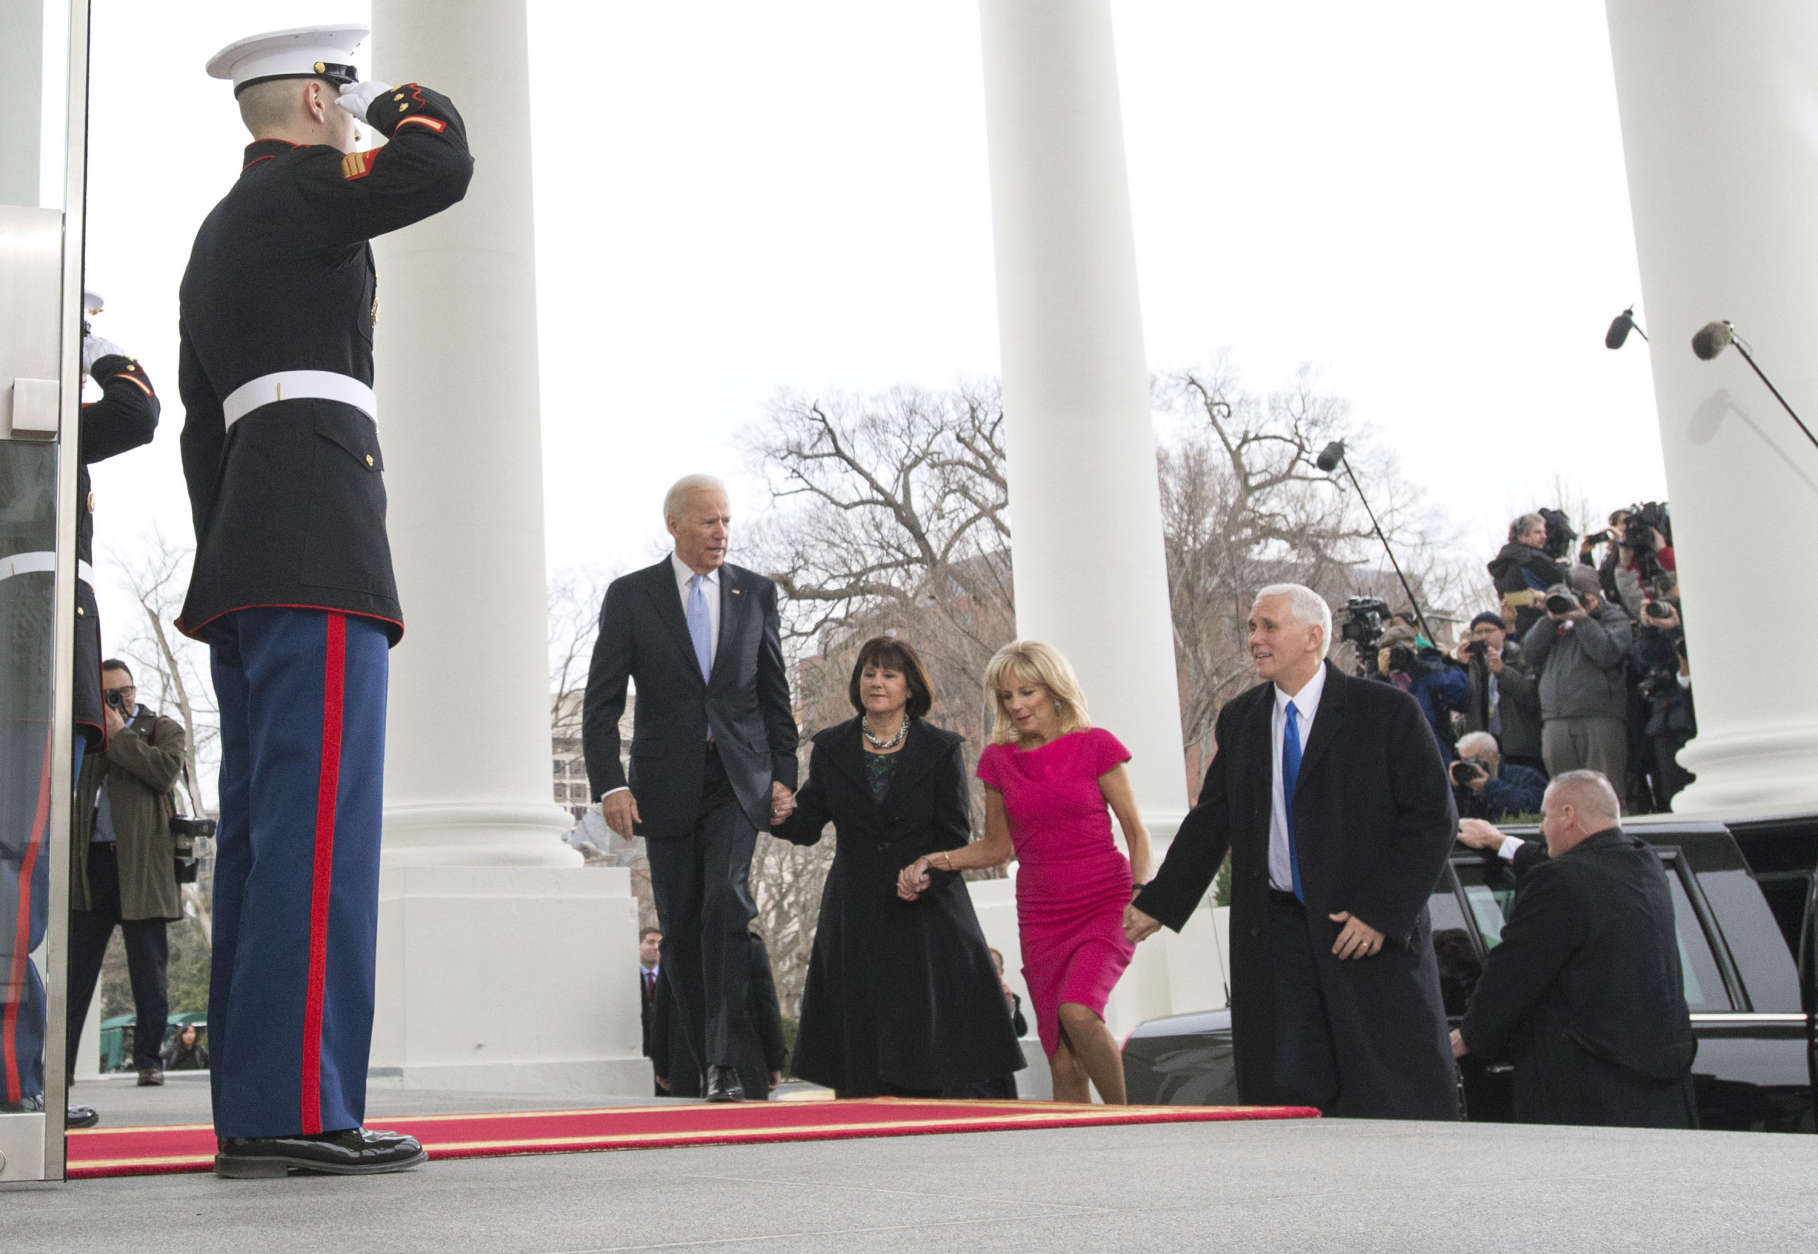 WASHINGTON, DC - JANUARY 20:  Vice President Joe Biden and his wife Jill walk with Vice President-Elect Mike Pence and his wife Karen as they arrives at the White House prior to the inauguration in Washington, D.C. on January 20, 2017. Later today Donald Trump will be sworn-in as the 45th President.  (Photo by Kevin Dietsch-Pool/Getty Images)